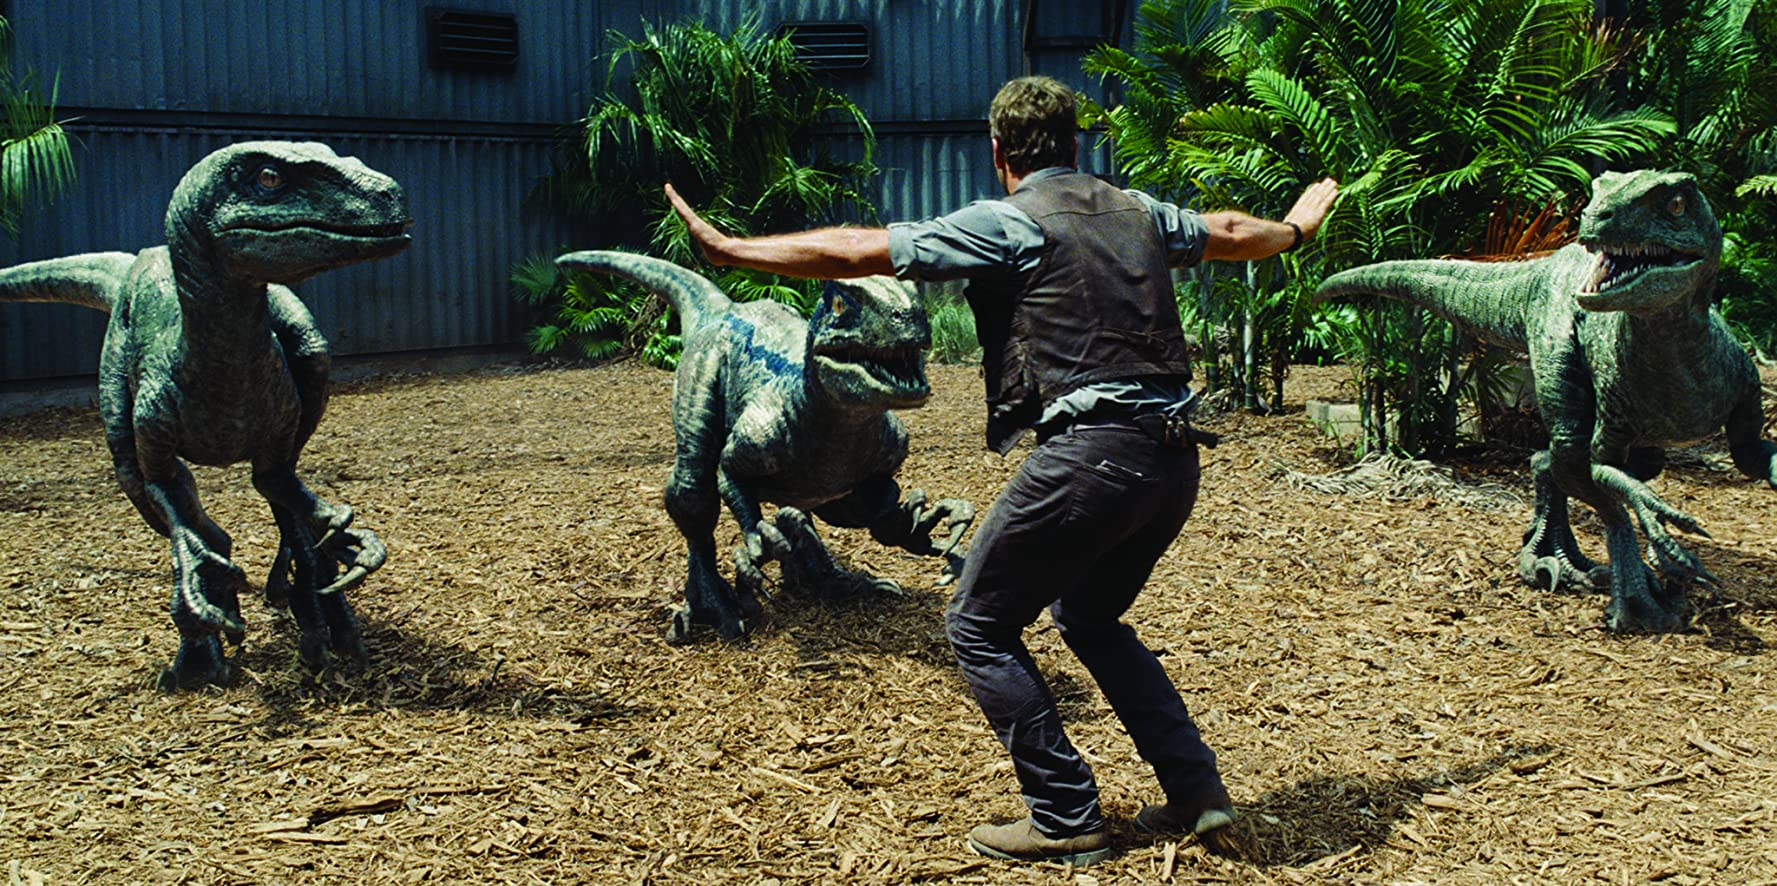 Chris Pratt in Jurassic World (2015)